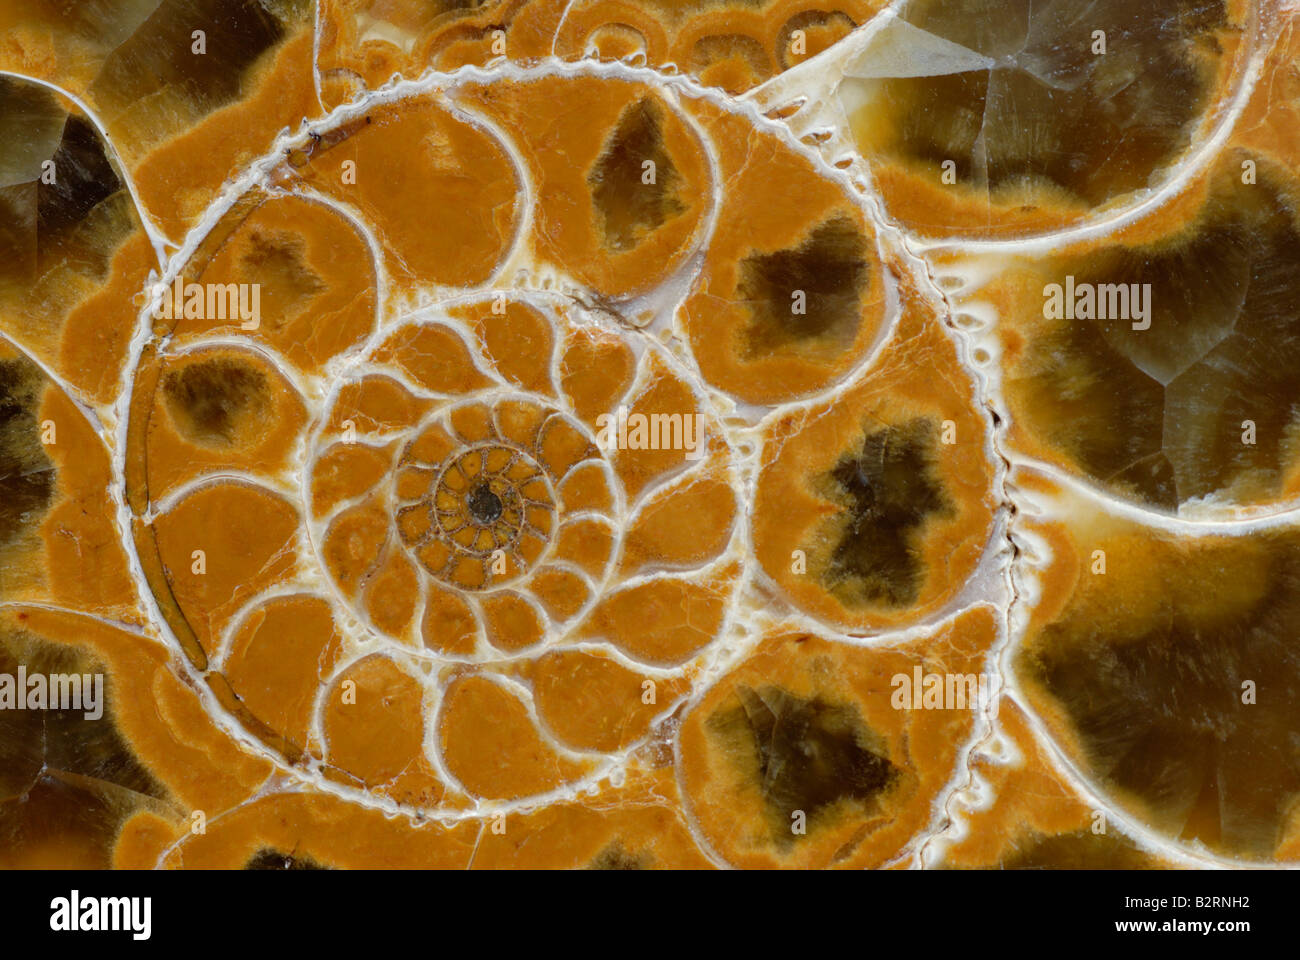 Fossiles Ammonite Perisphinctes sp de Madagascar Jurassique Photo Stock